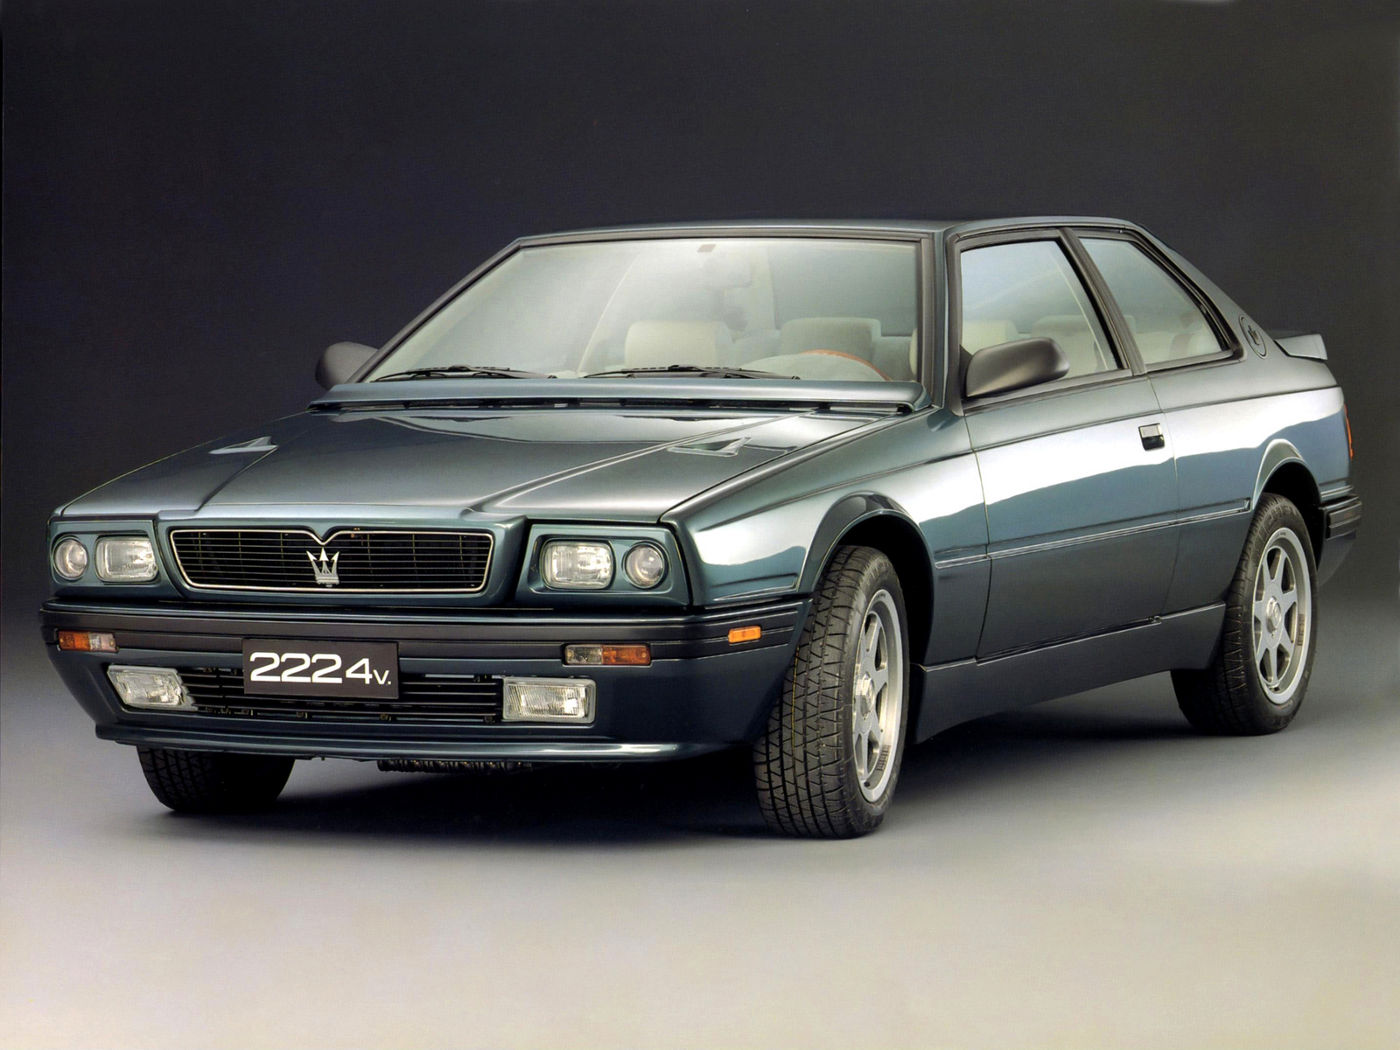 1989 Maserati 222 export - Biturbo - the classic 2-door